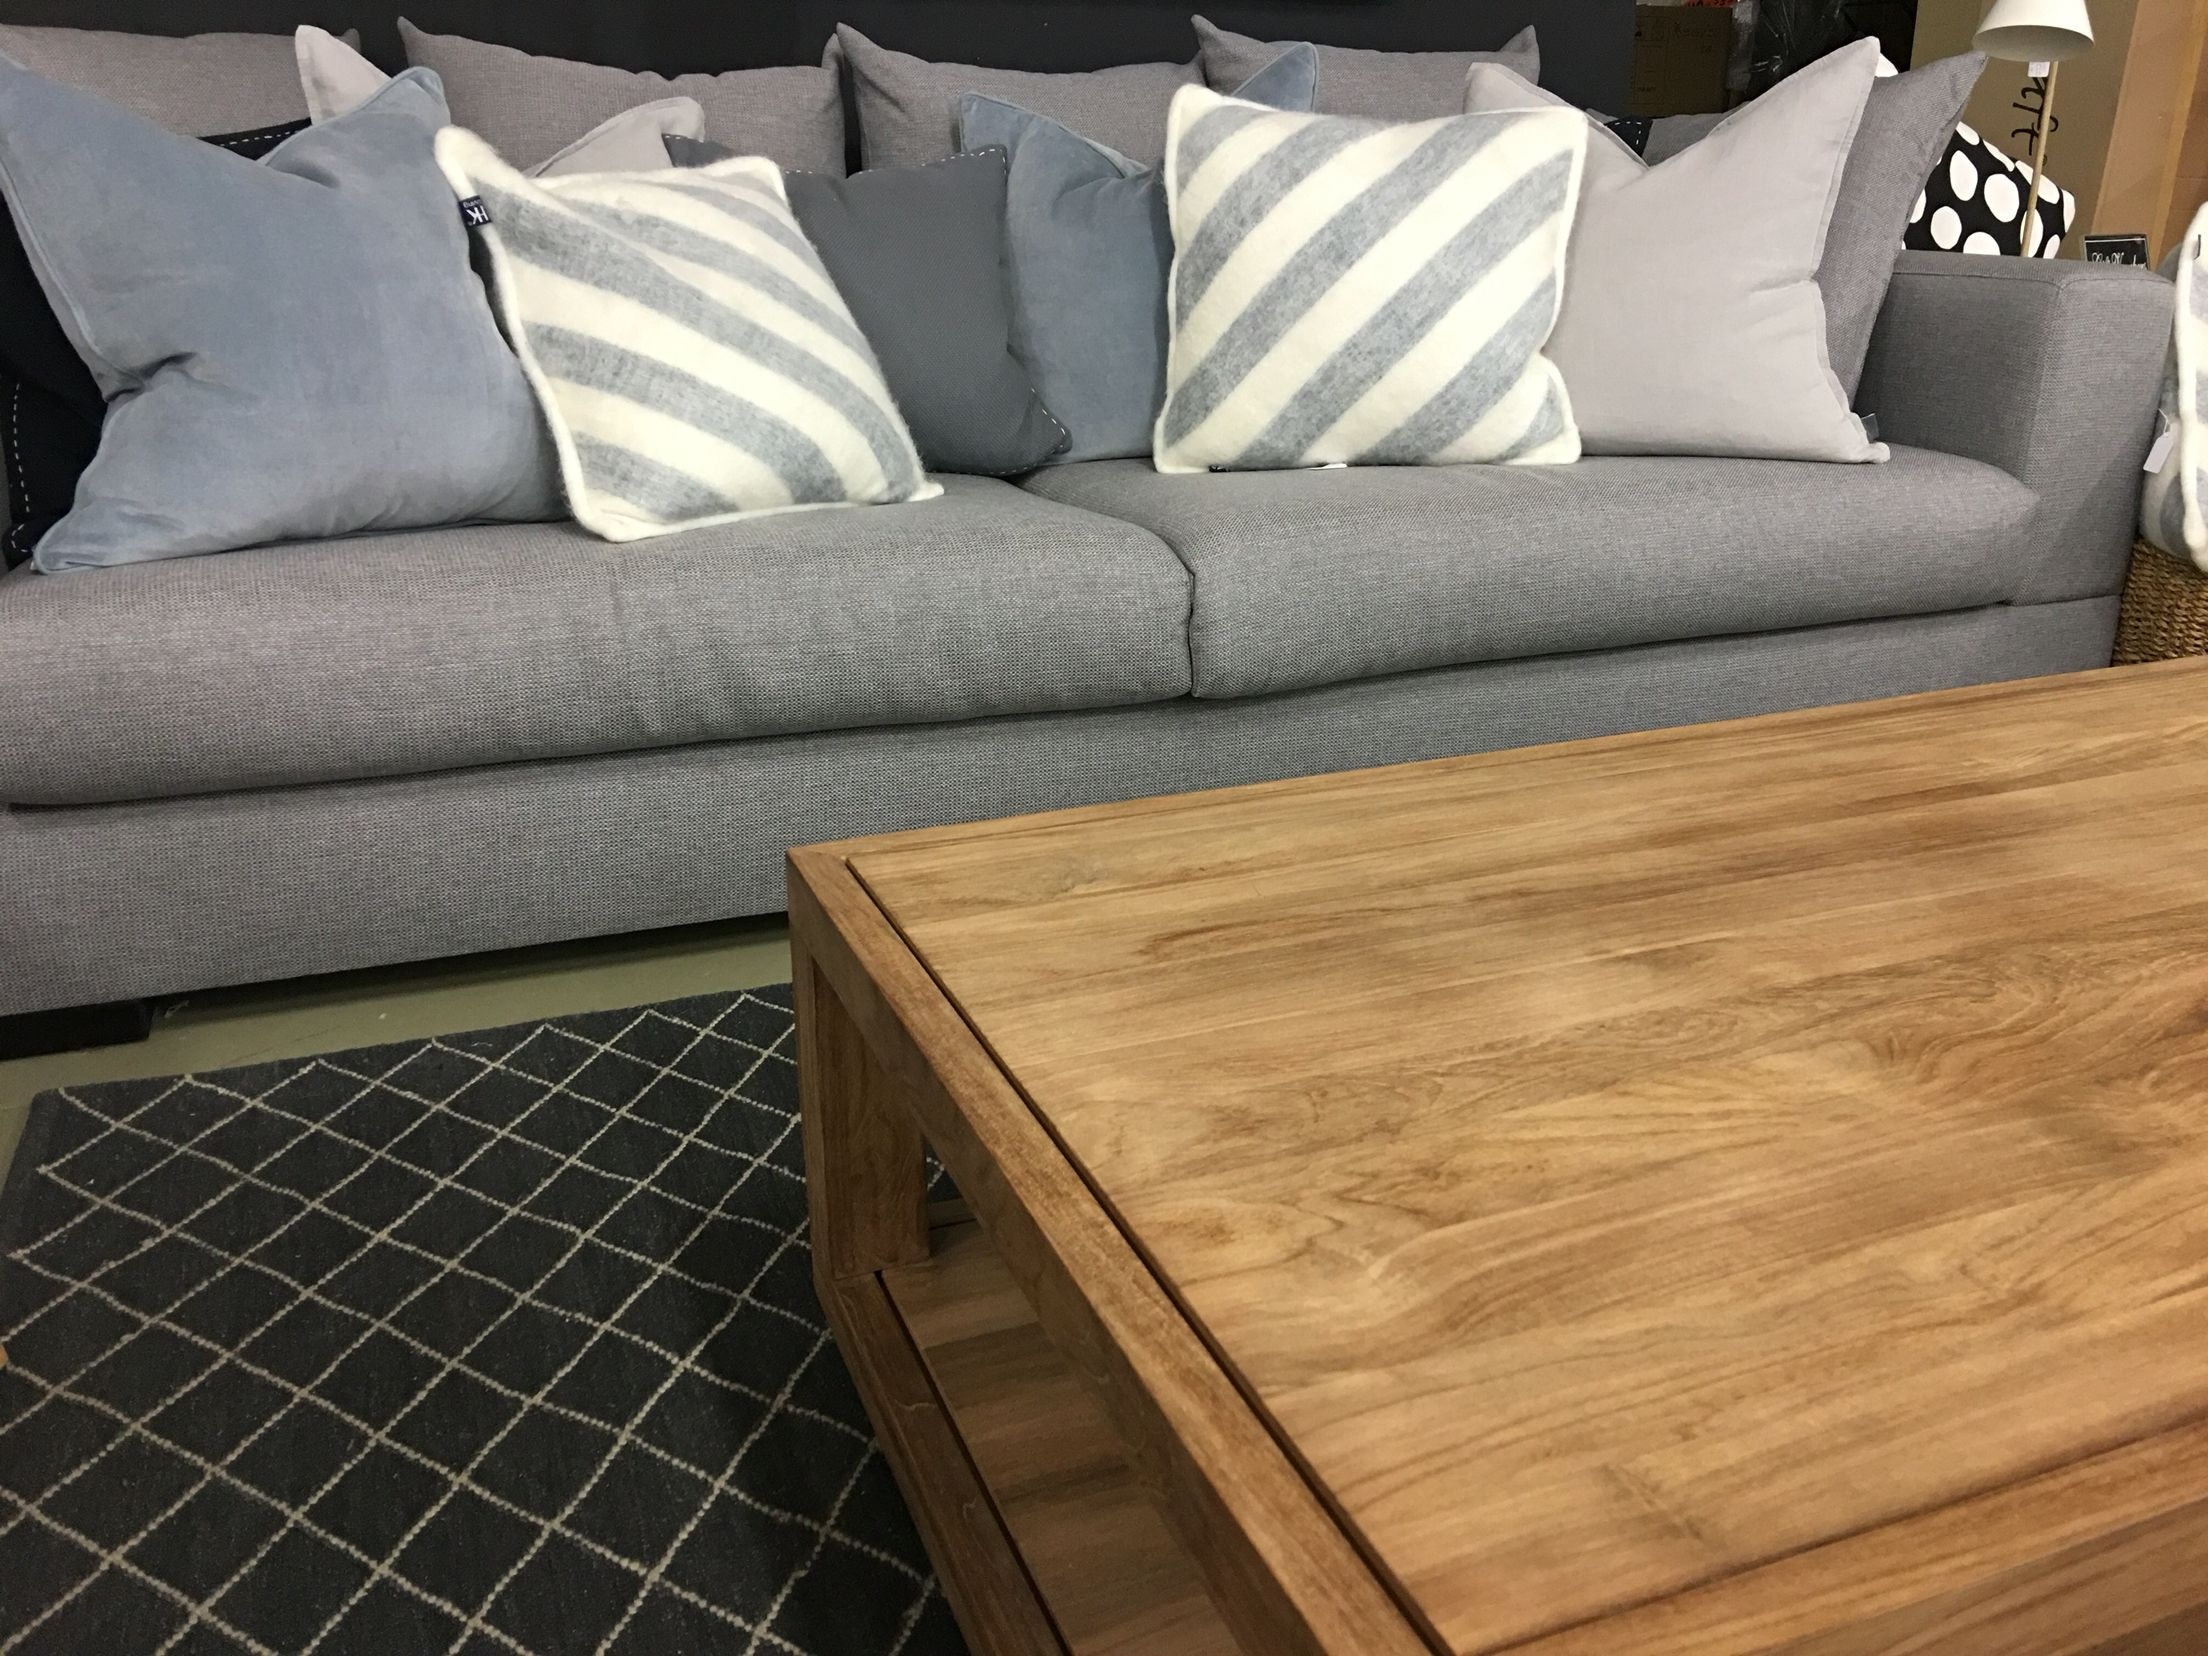 Australian Made Sofas Beautifully Australian Made Sofas In Store Now Snippets Of Our